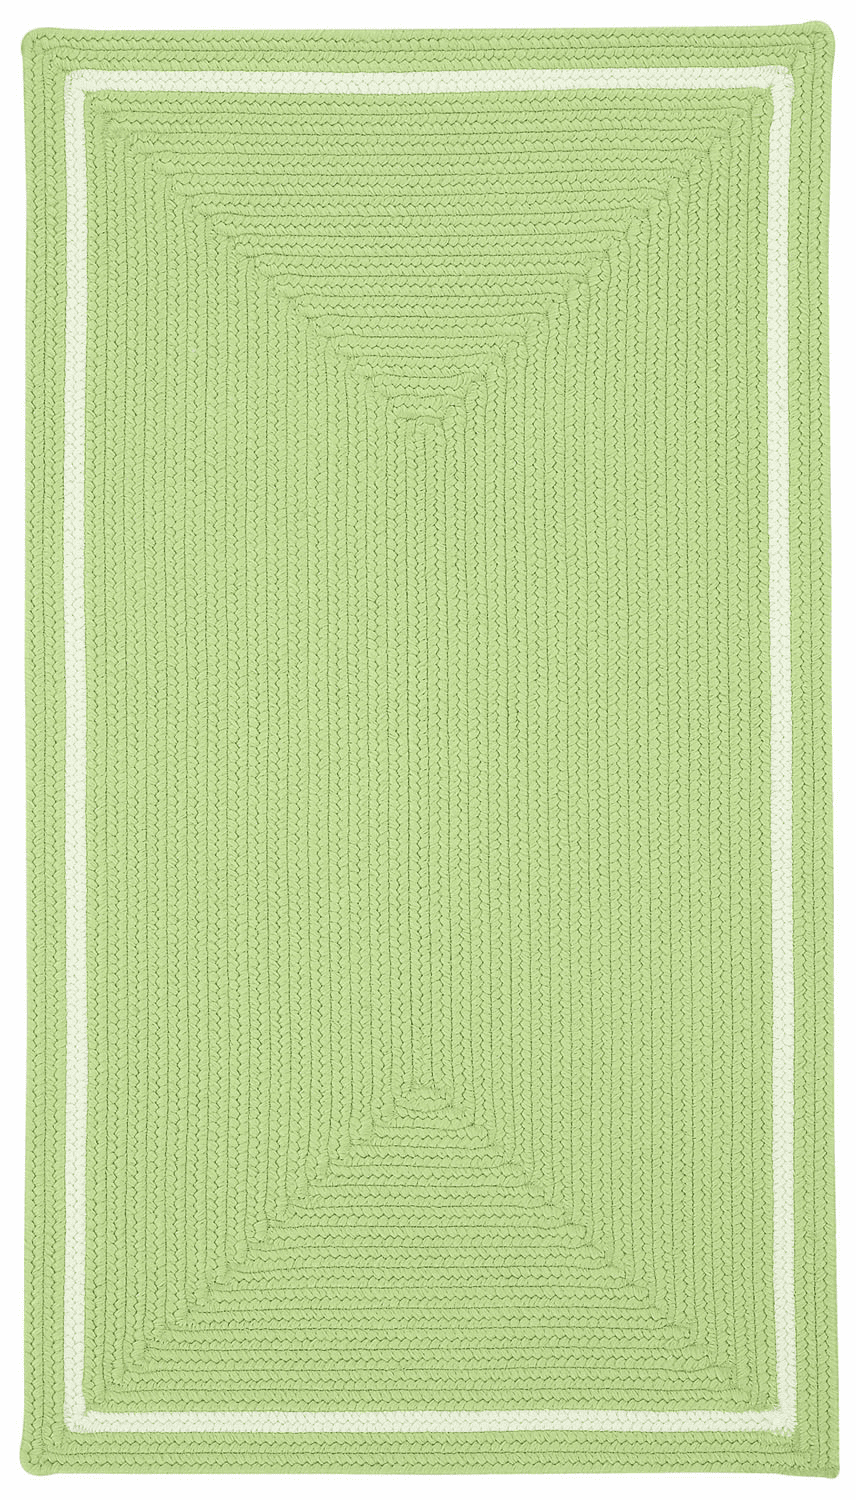 Hand-Braided Fronds Rug